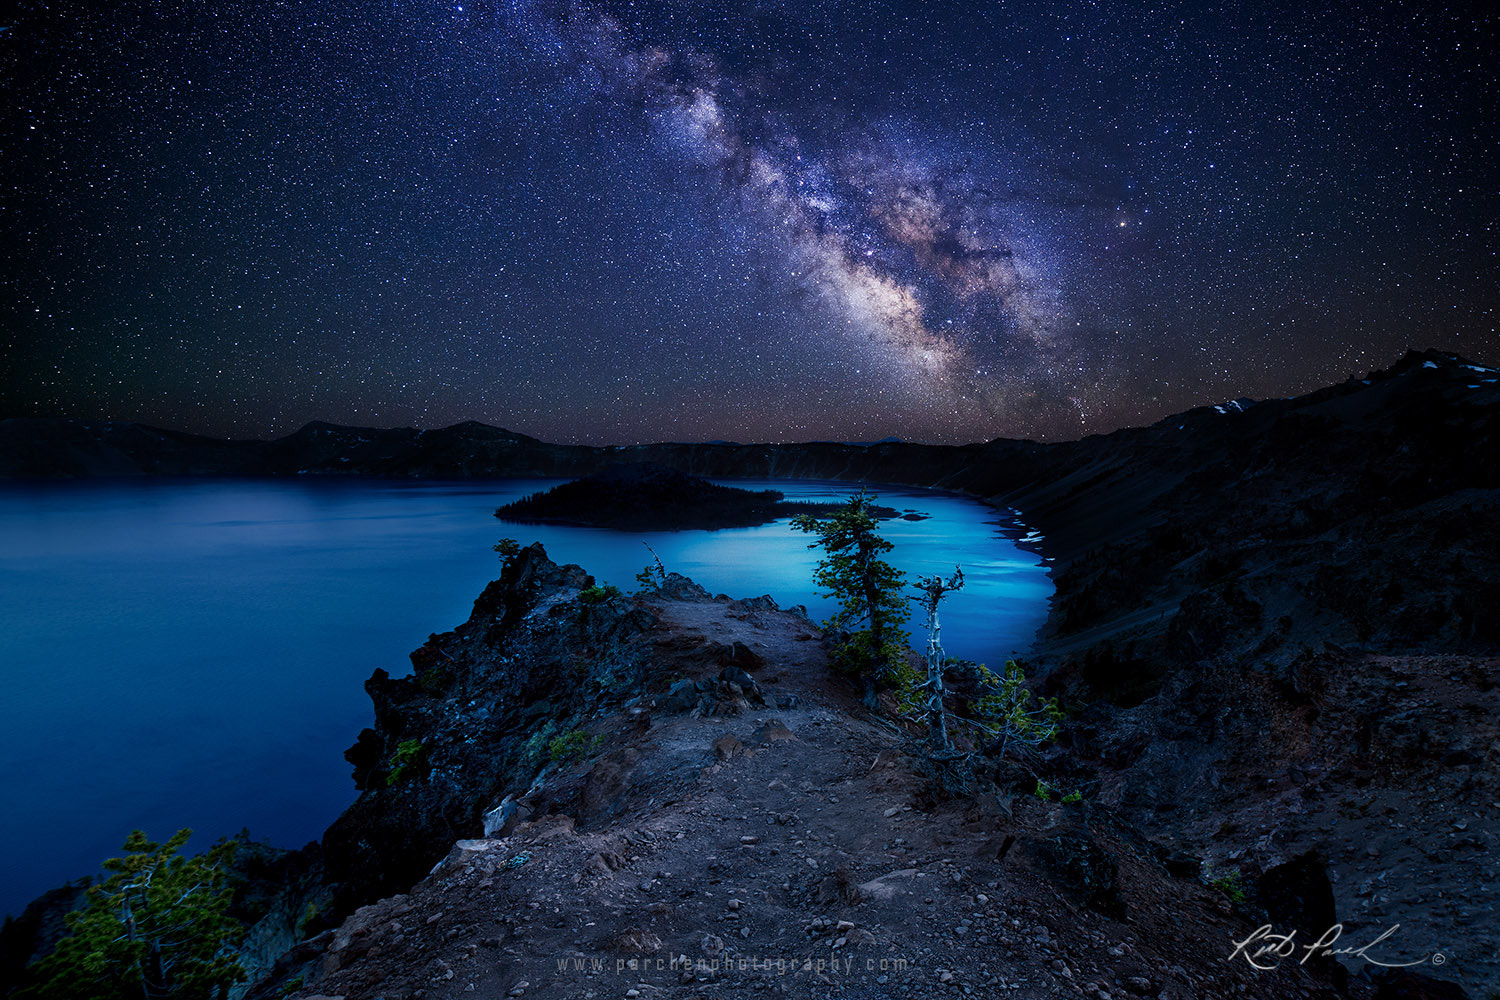 Photograph Starry Night over Crater Lake by Rick Parchen on 500px